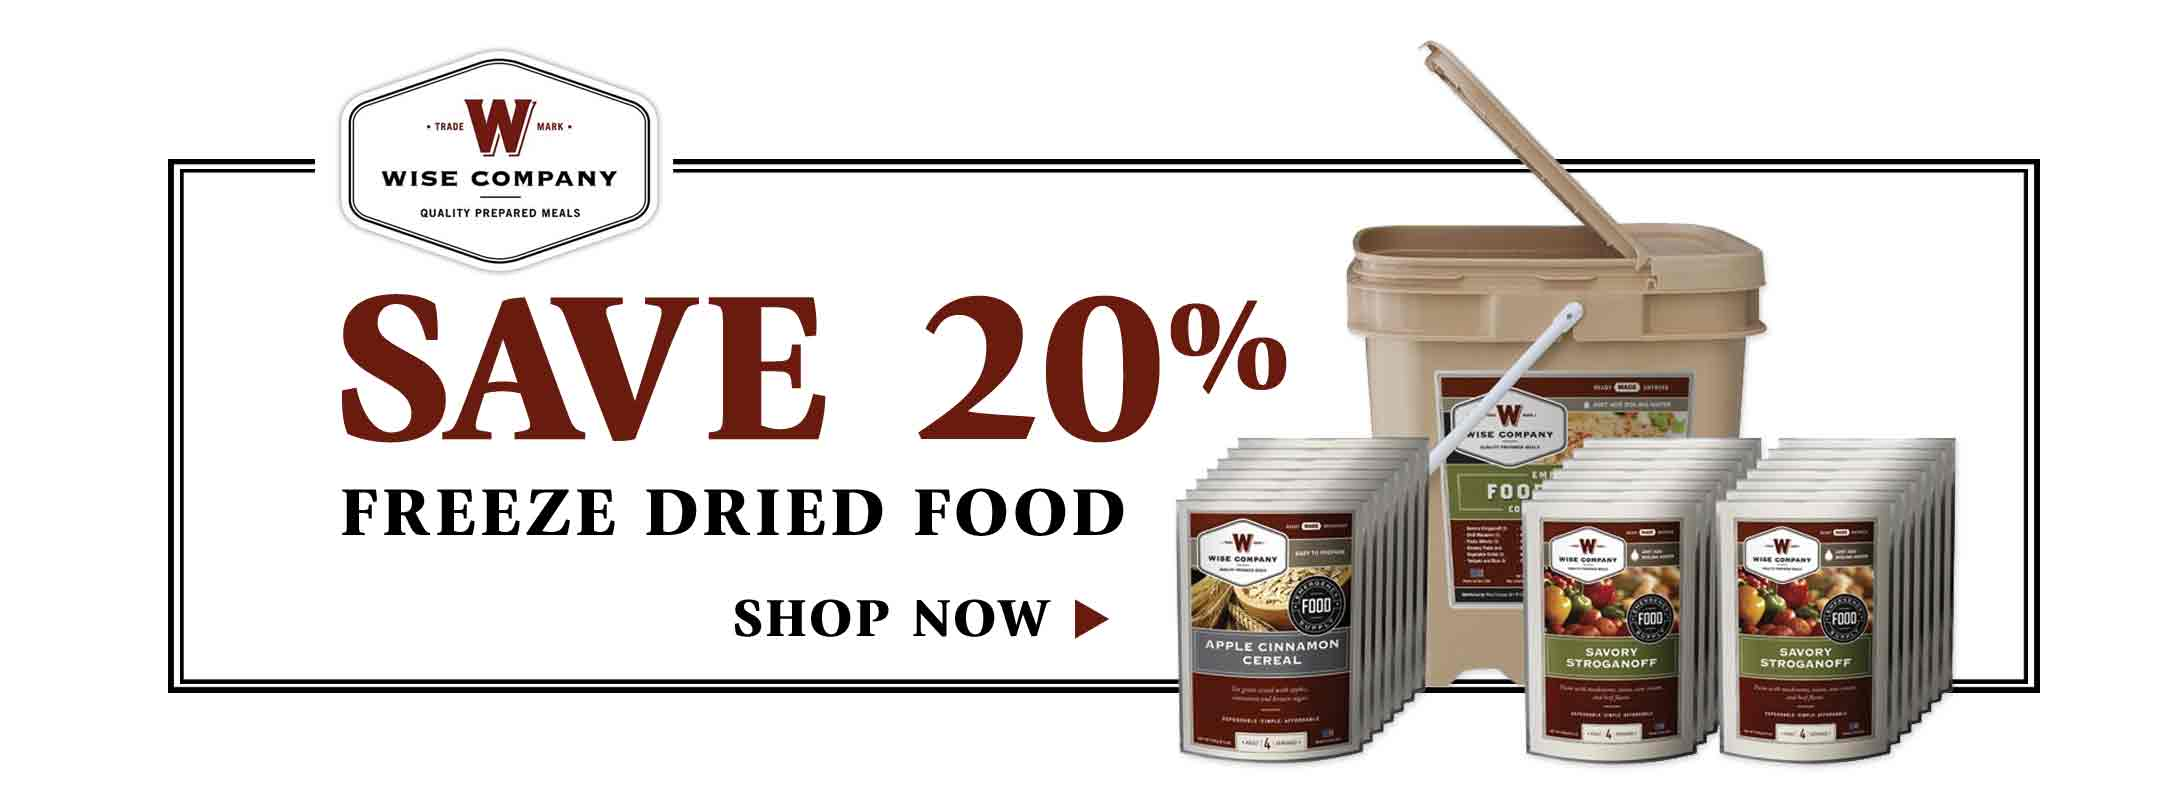 Save 20% on Wise Food